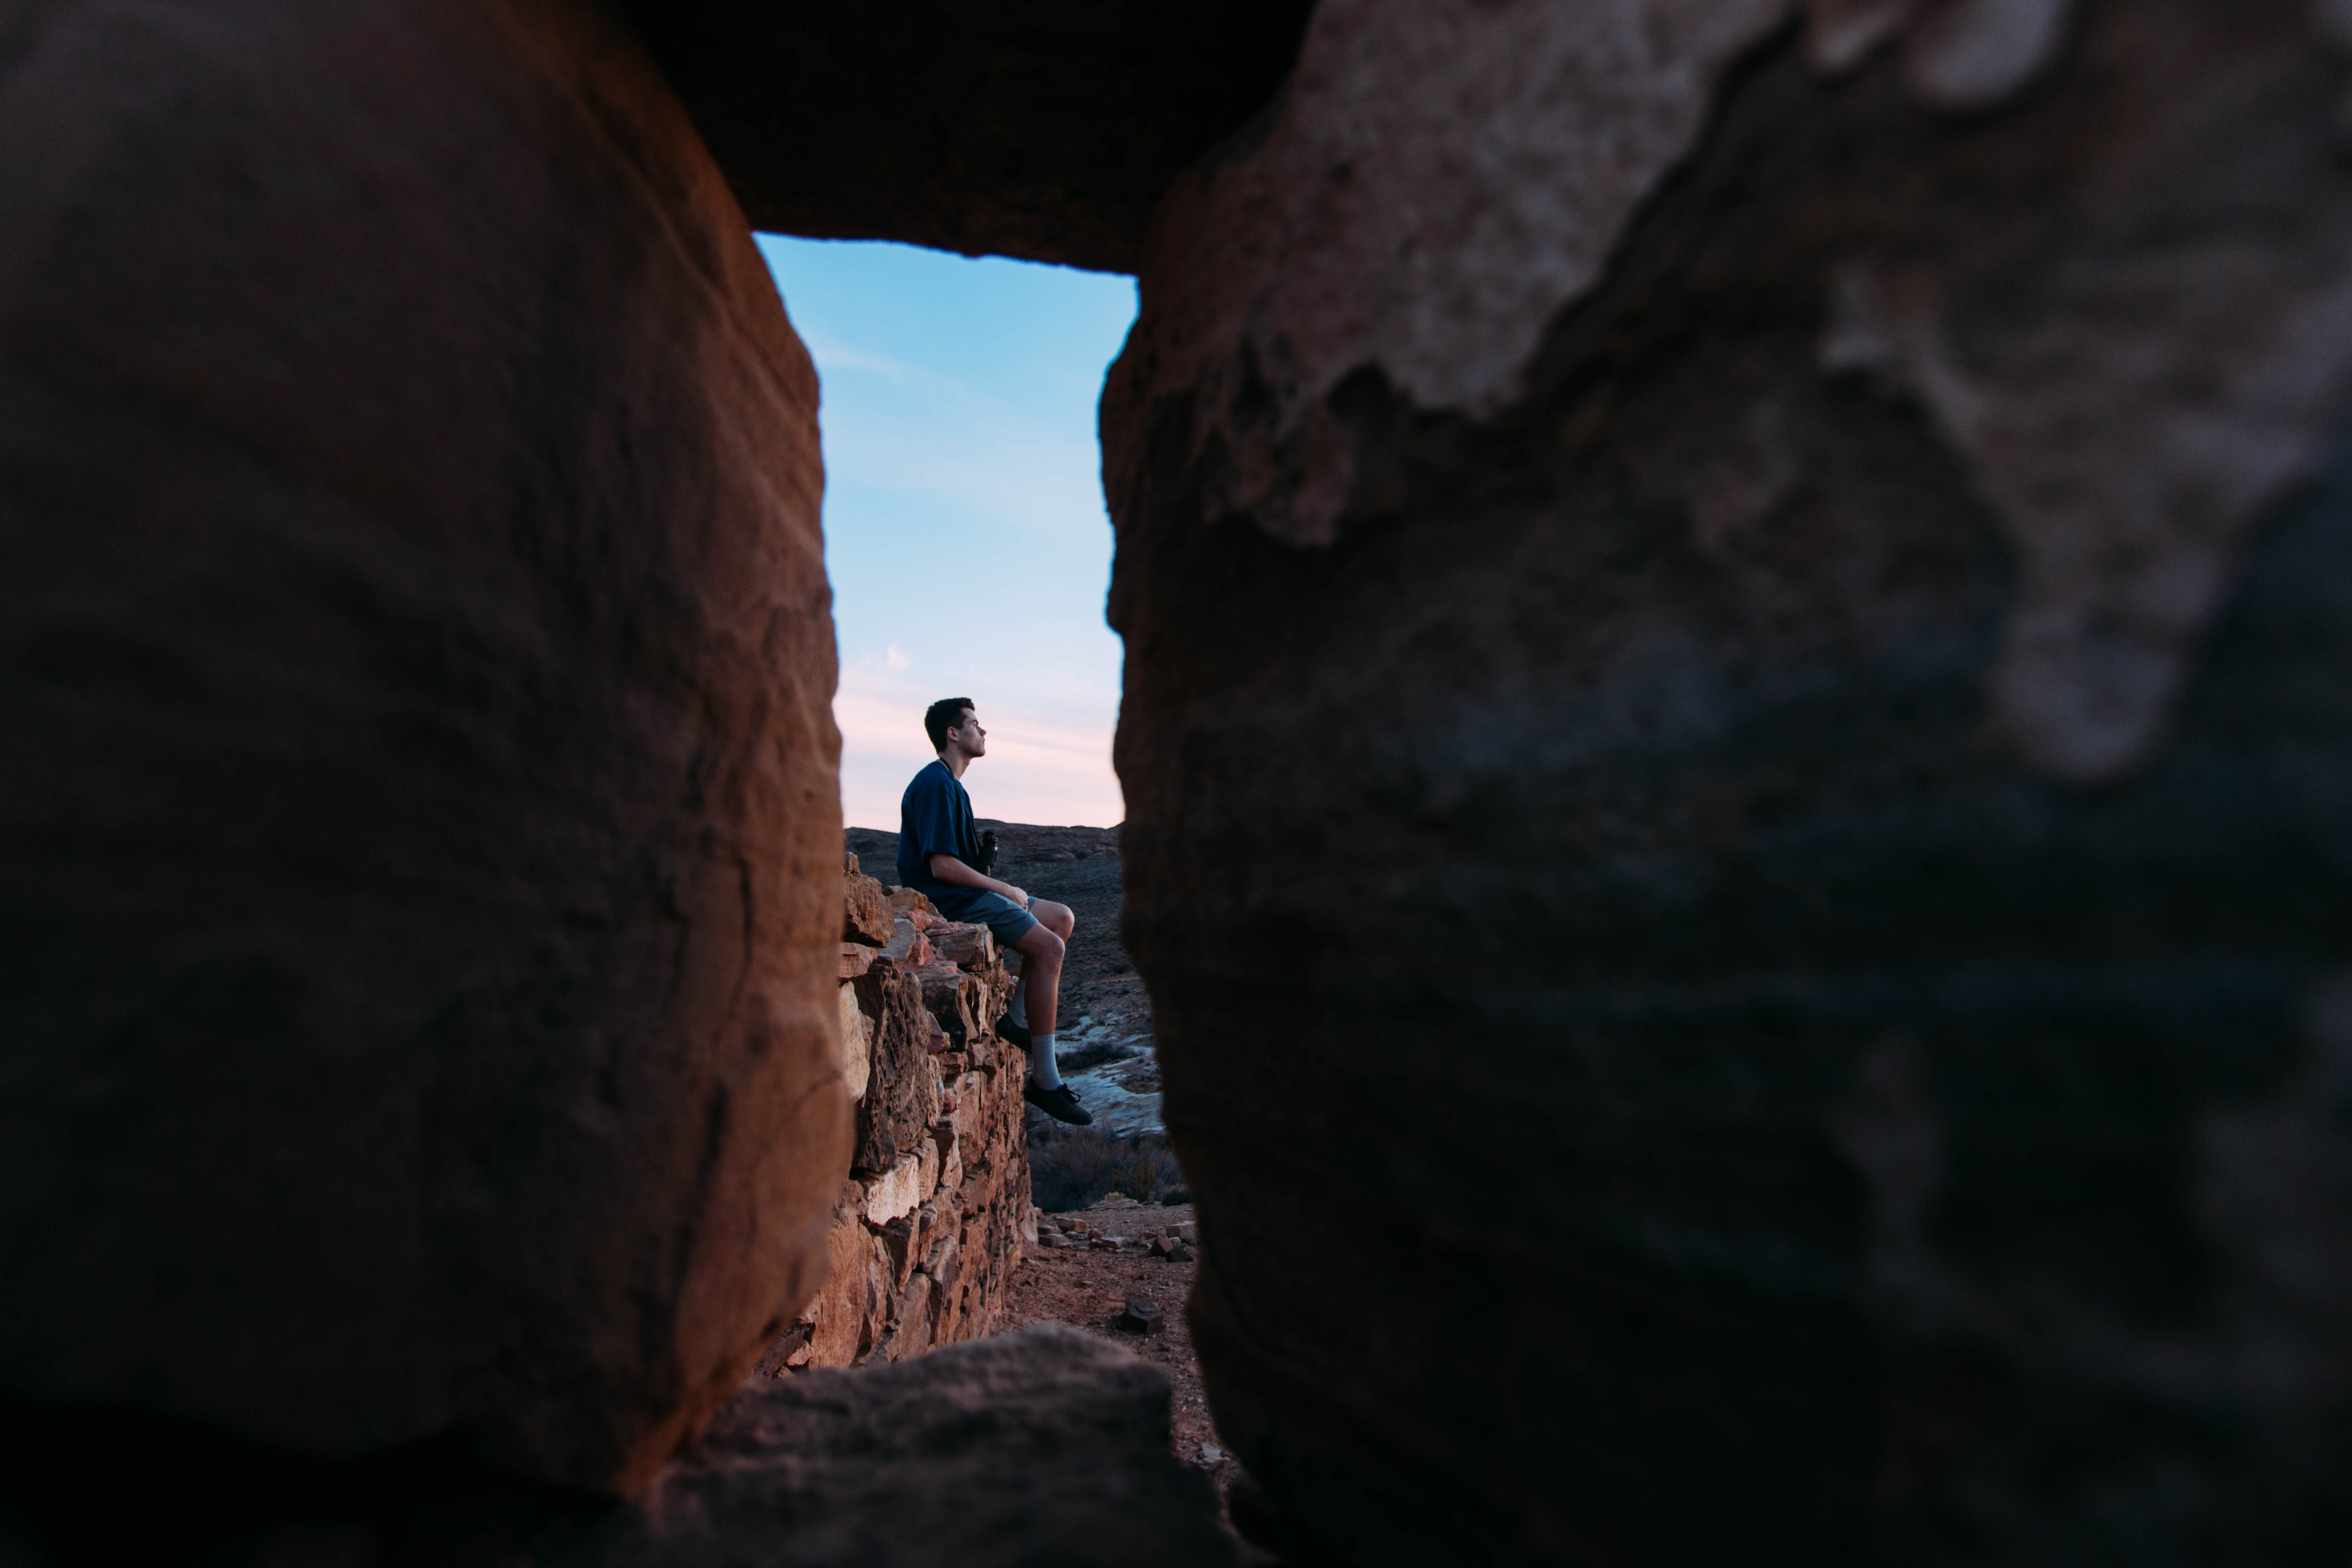 A man sitting on red rocks seen through a gap in a rock formation